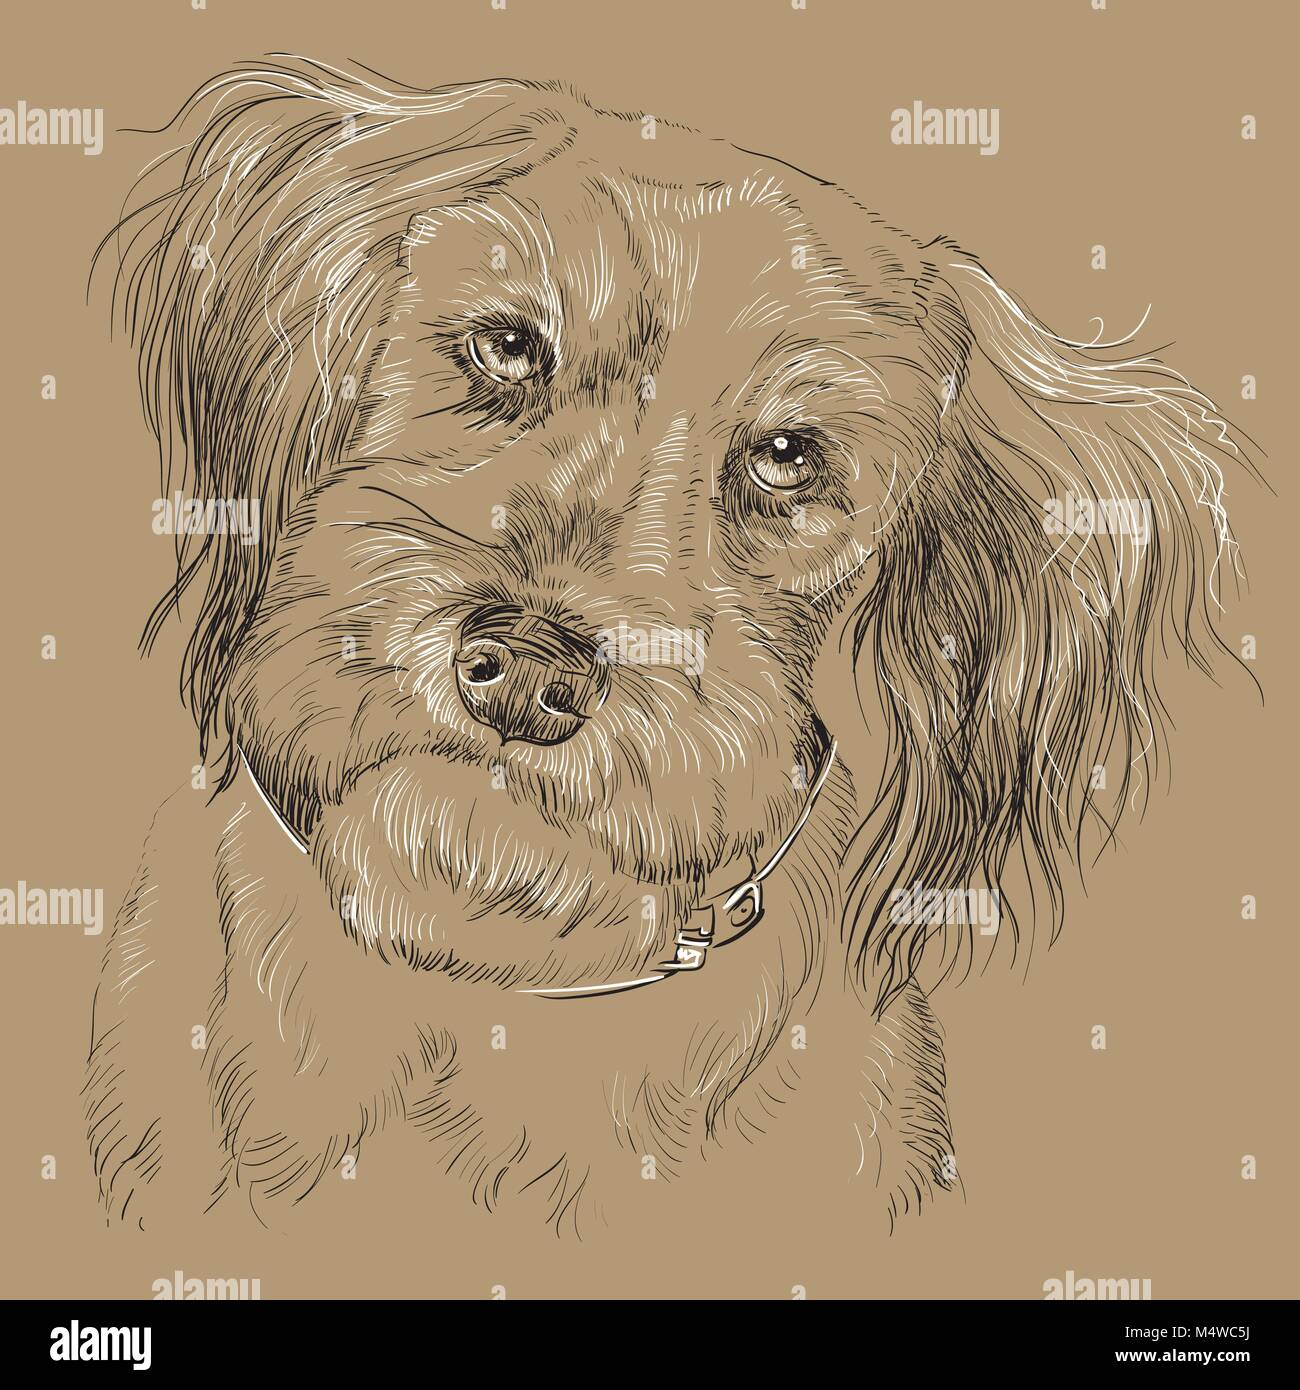 Fluffy mongrel dog vector hand drawing black and white illustration isolated on beige background - Stock Vector